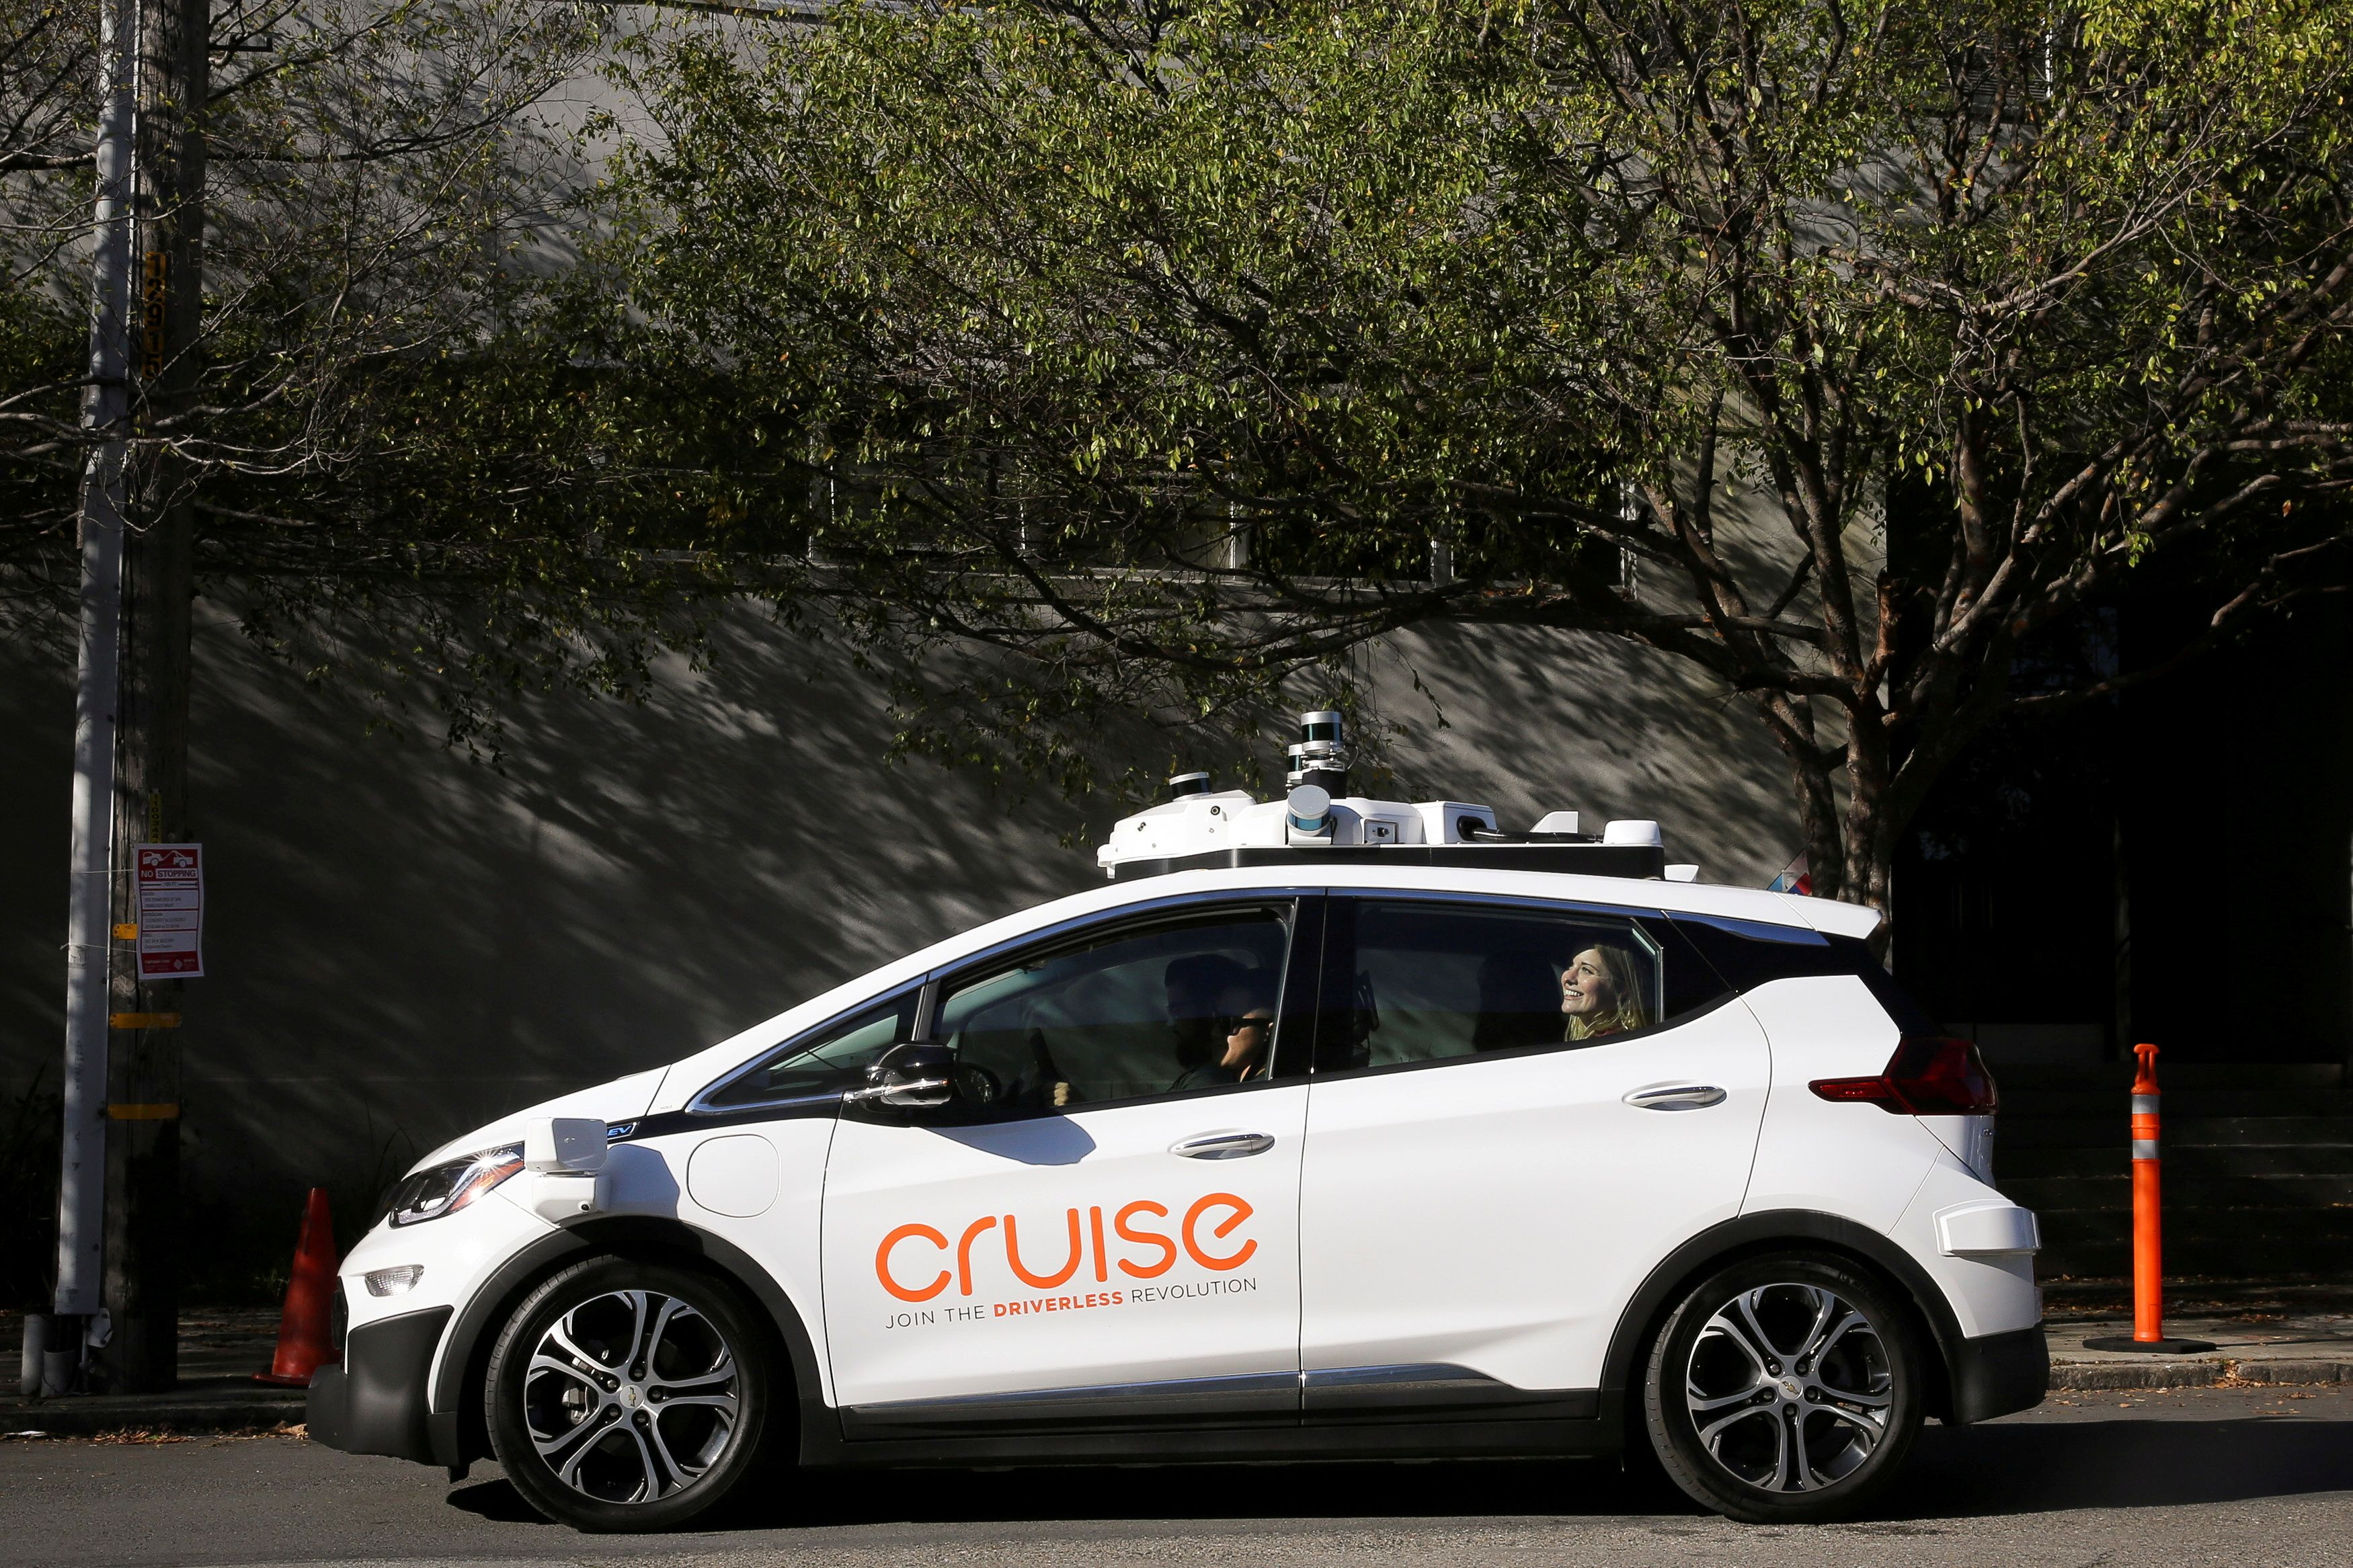 A woman smiles in the back seat of a self-driving Chevy Bolt EV car during a media event by Cruise, GM's autonomous car unit, in San Francisco, California, U.S., Nov. 28, 2017. REUTERS/Elijah Nouvelage/File Photo